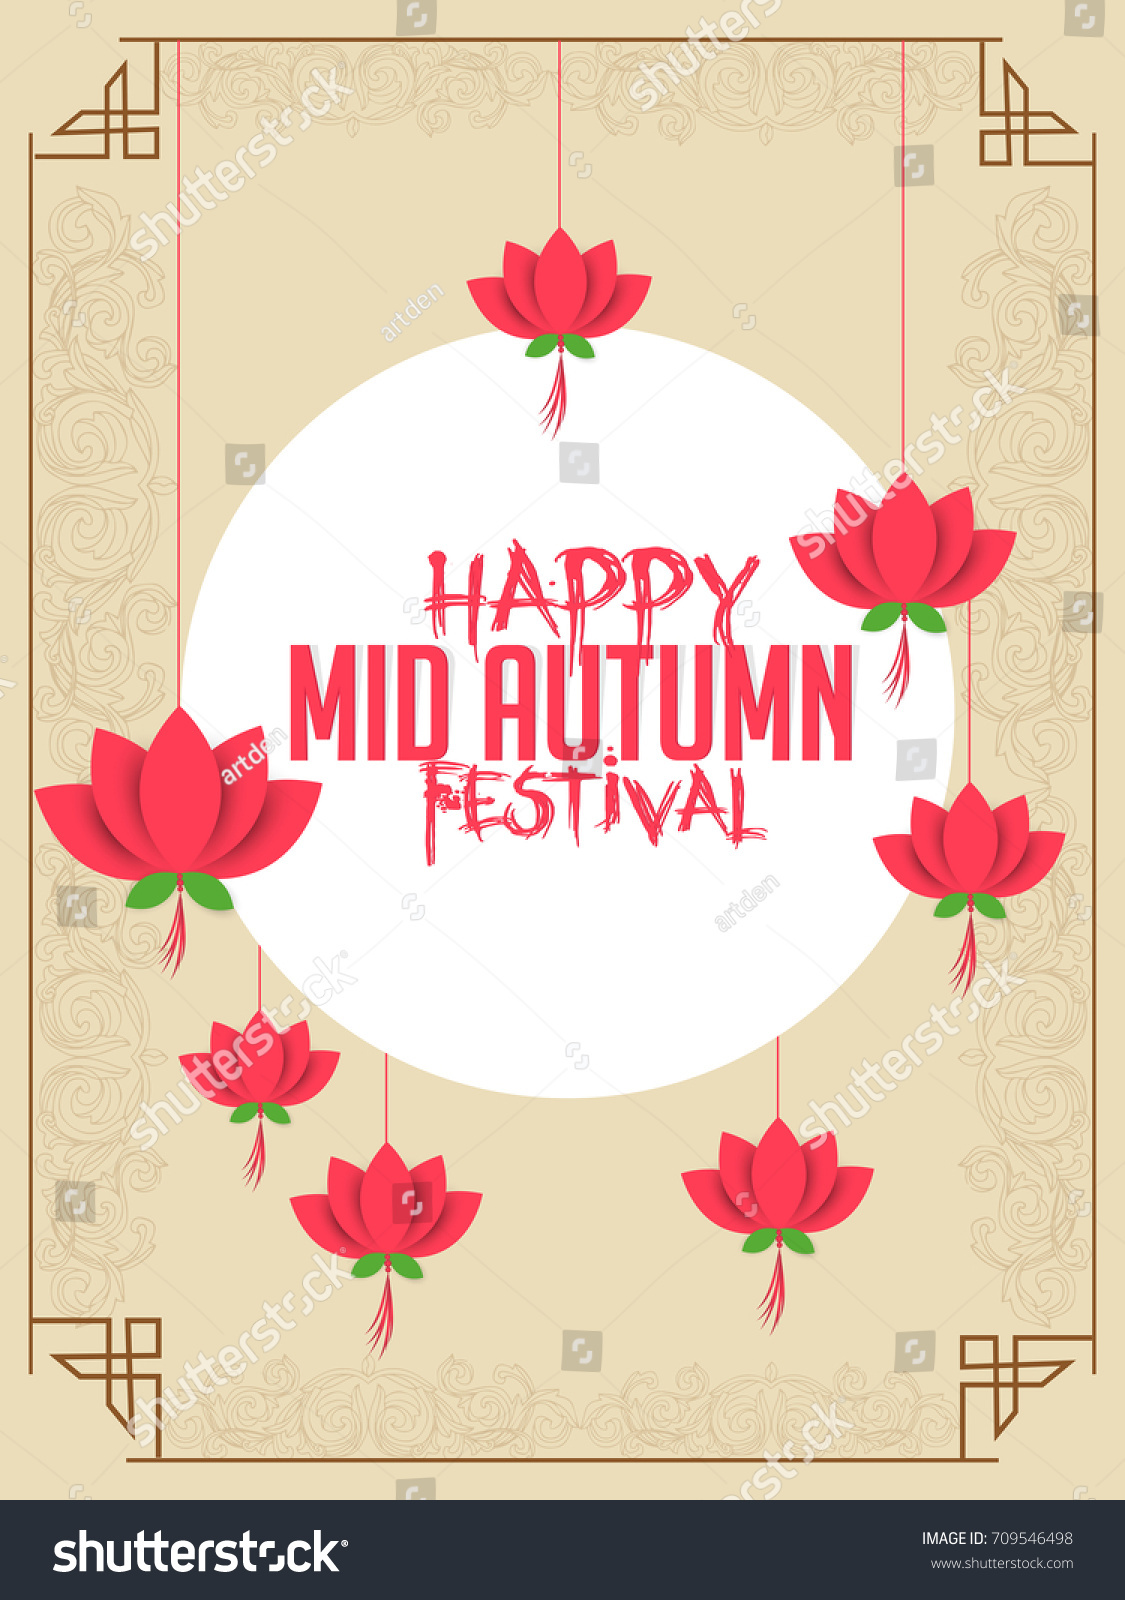 Nice beautiful abstract mid autumn festival stock vector 709546498 nice and beautiful abstract for mid autumn festival with nice and creative design illustration in a kristyandbryce Choice Image